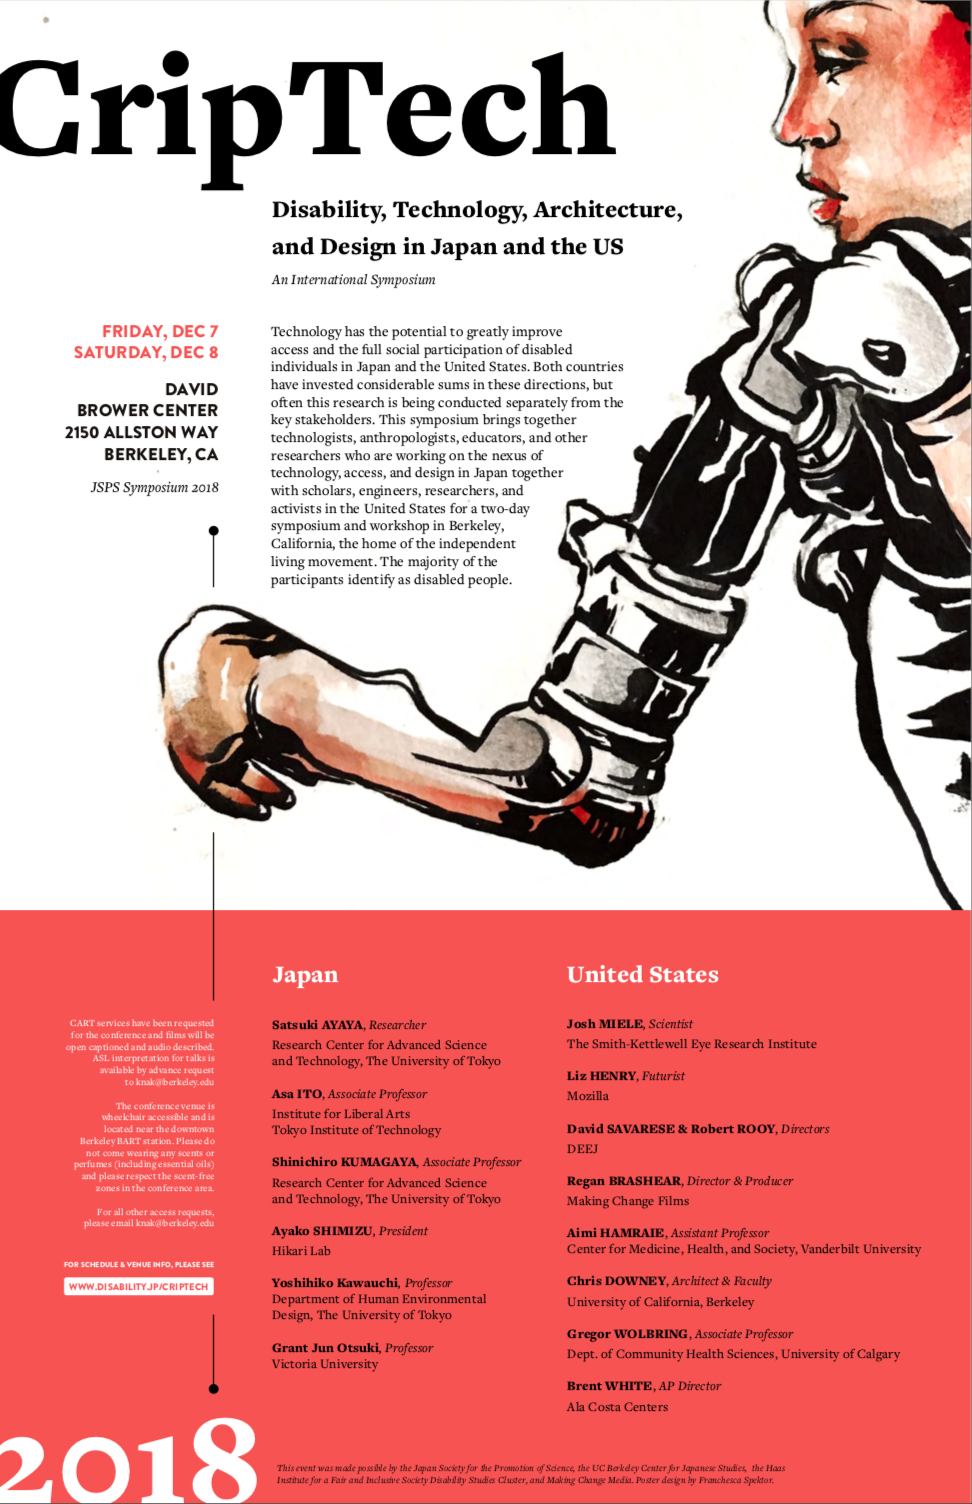 Poster shows details of the Criptech event with a photo of a woman with a robotic shoulder and arm